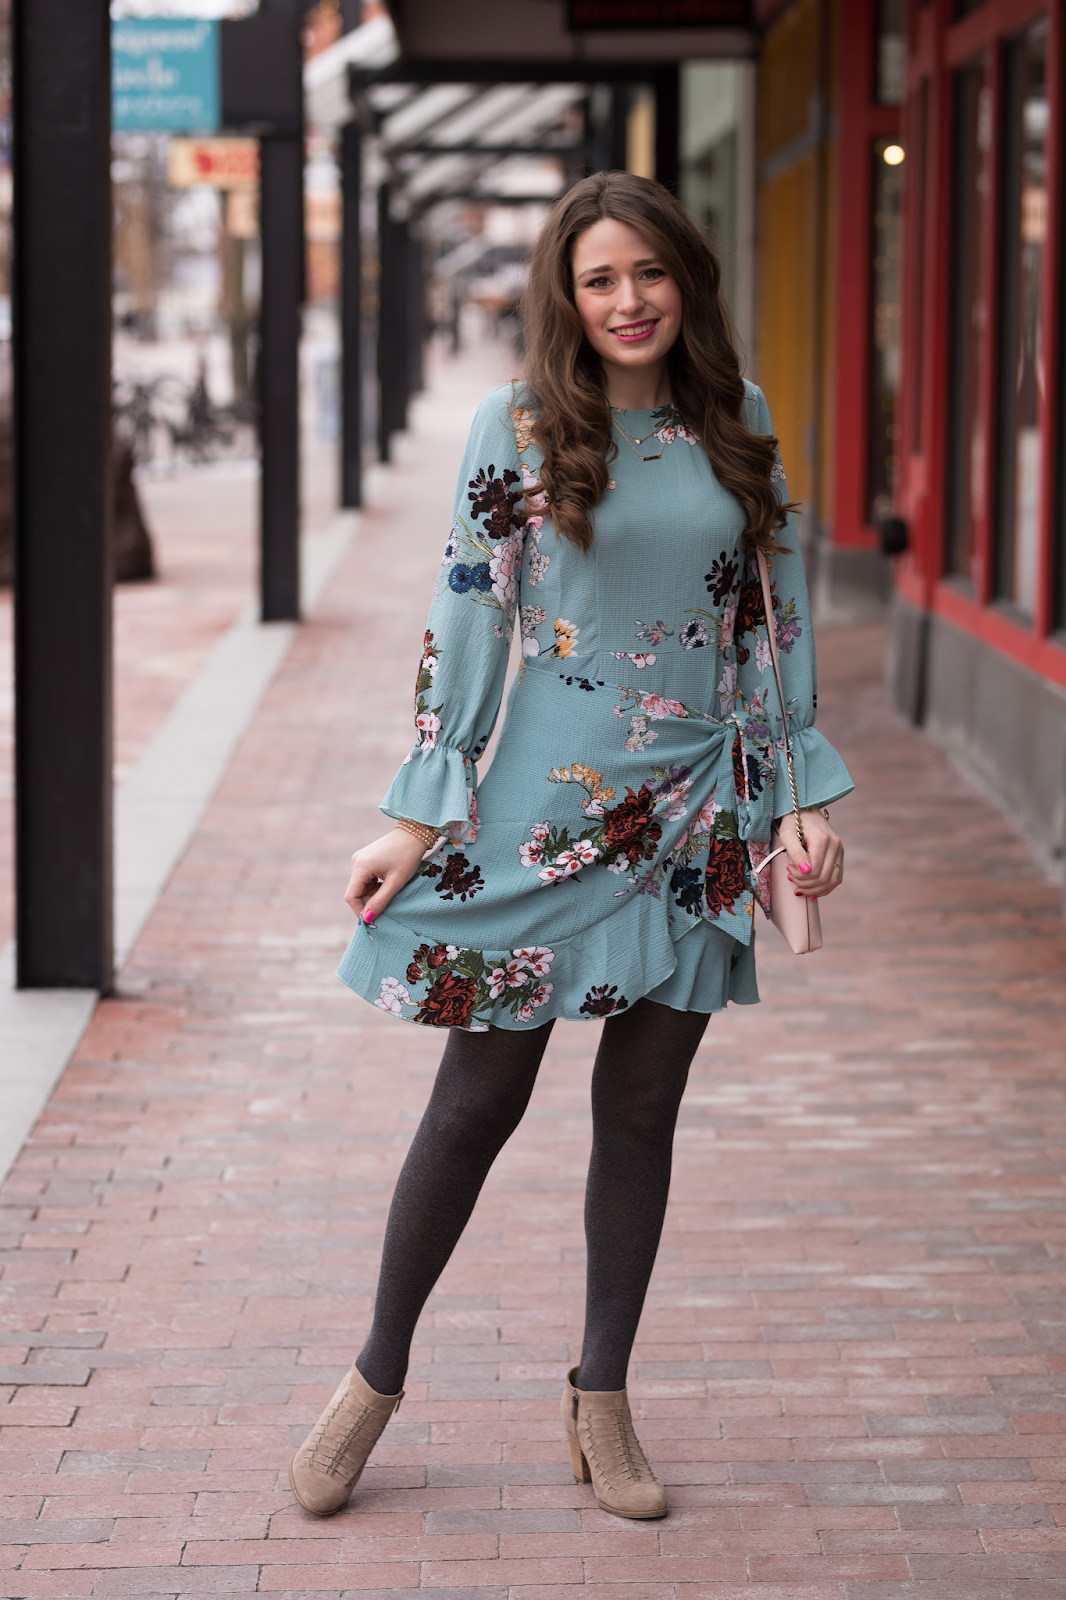 f469a1eda6 Cold Weather Easter Outfit. | Sophisticated Style Group Board ...